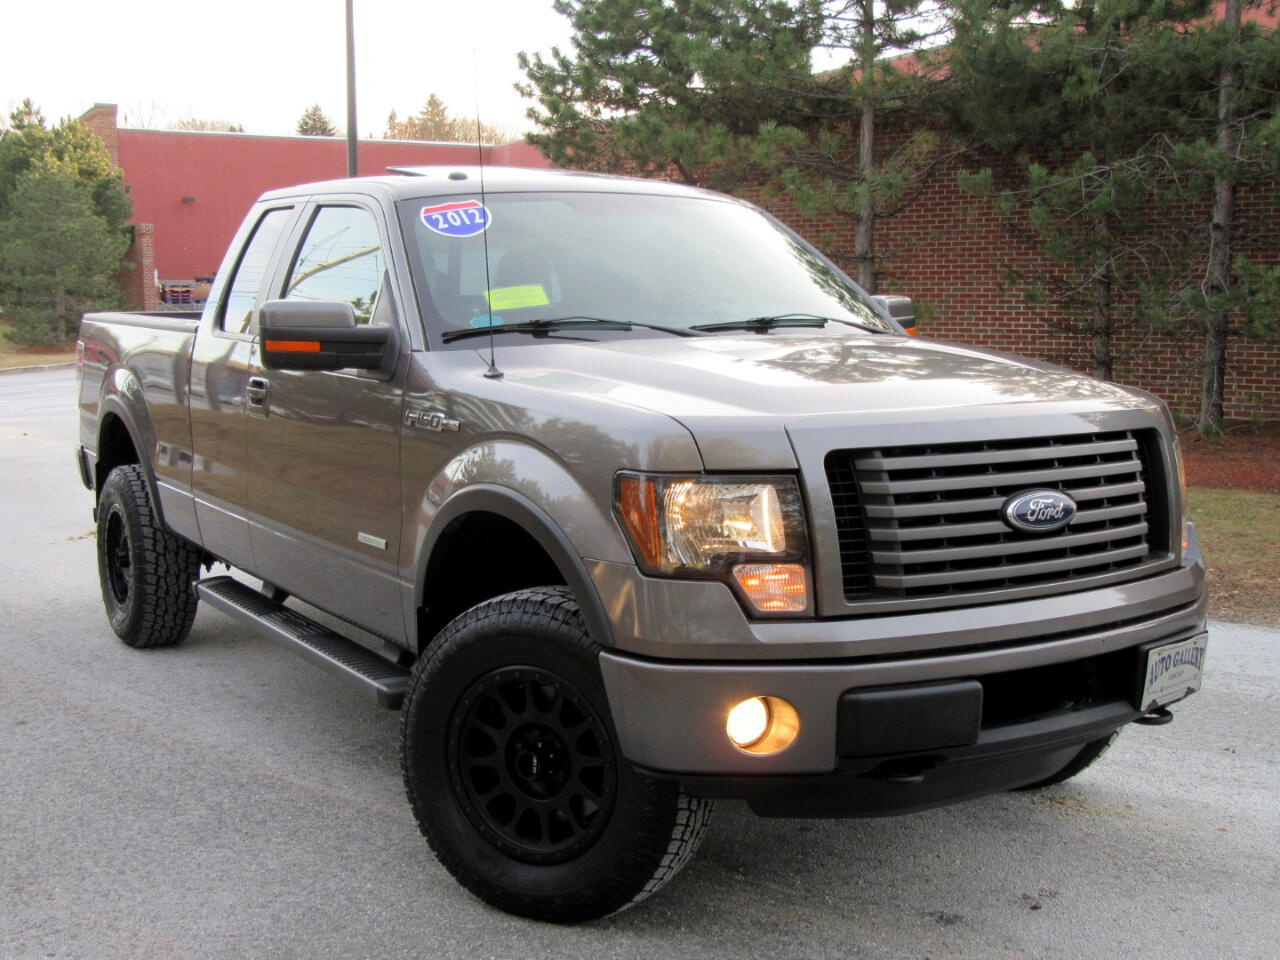 2012 Ford F-150 4WD EXT CAB 3.5L FX4 NAVIGATION LEATHER MOON ROOF